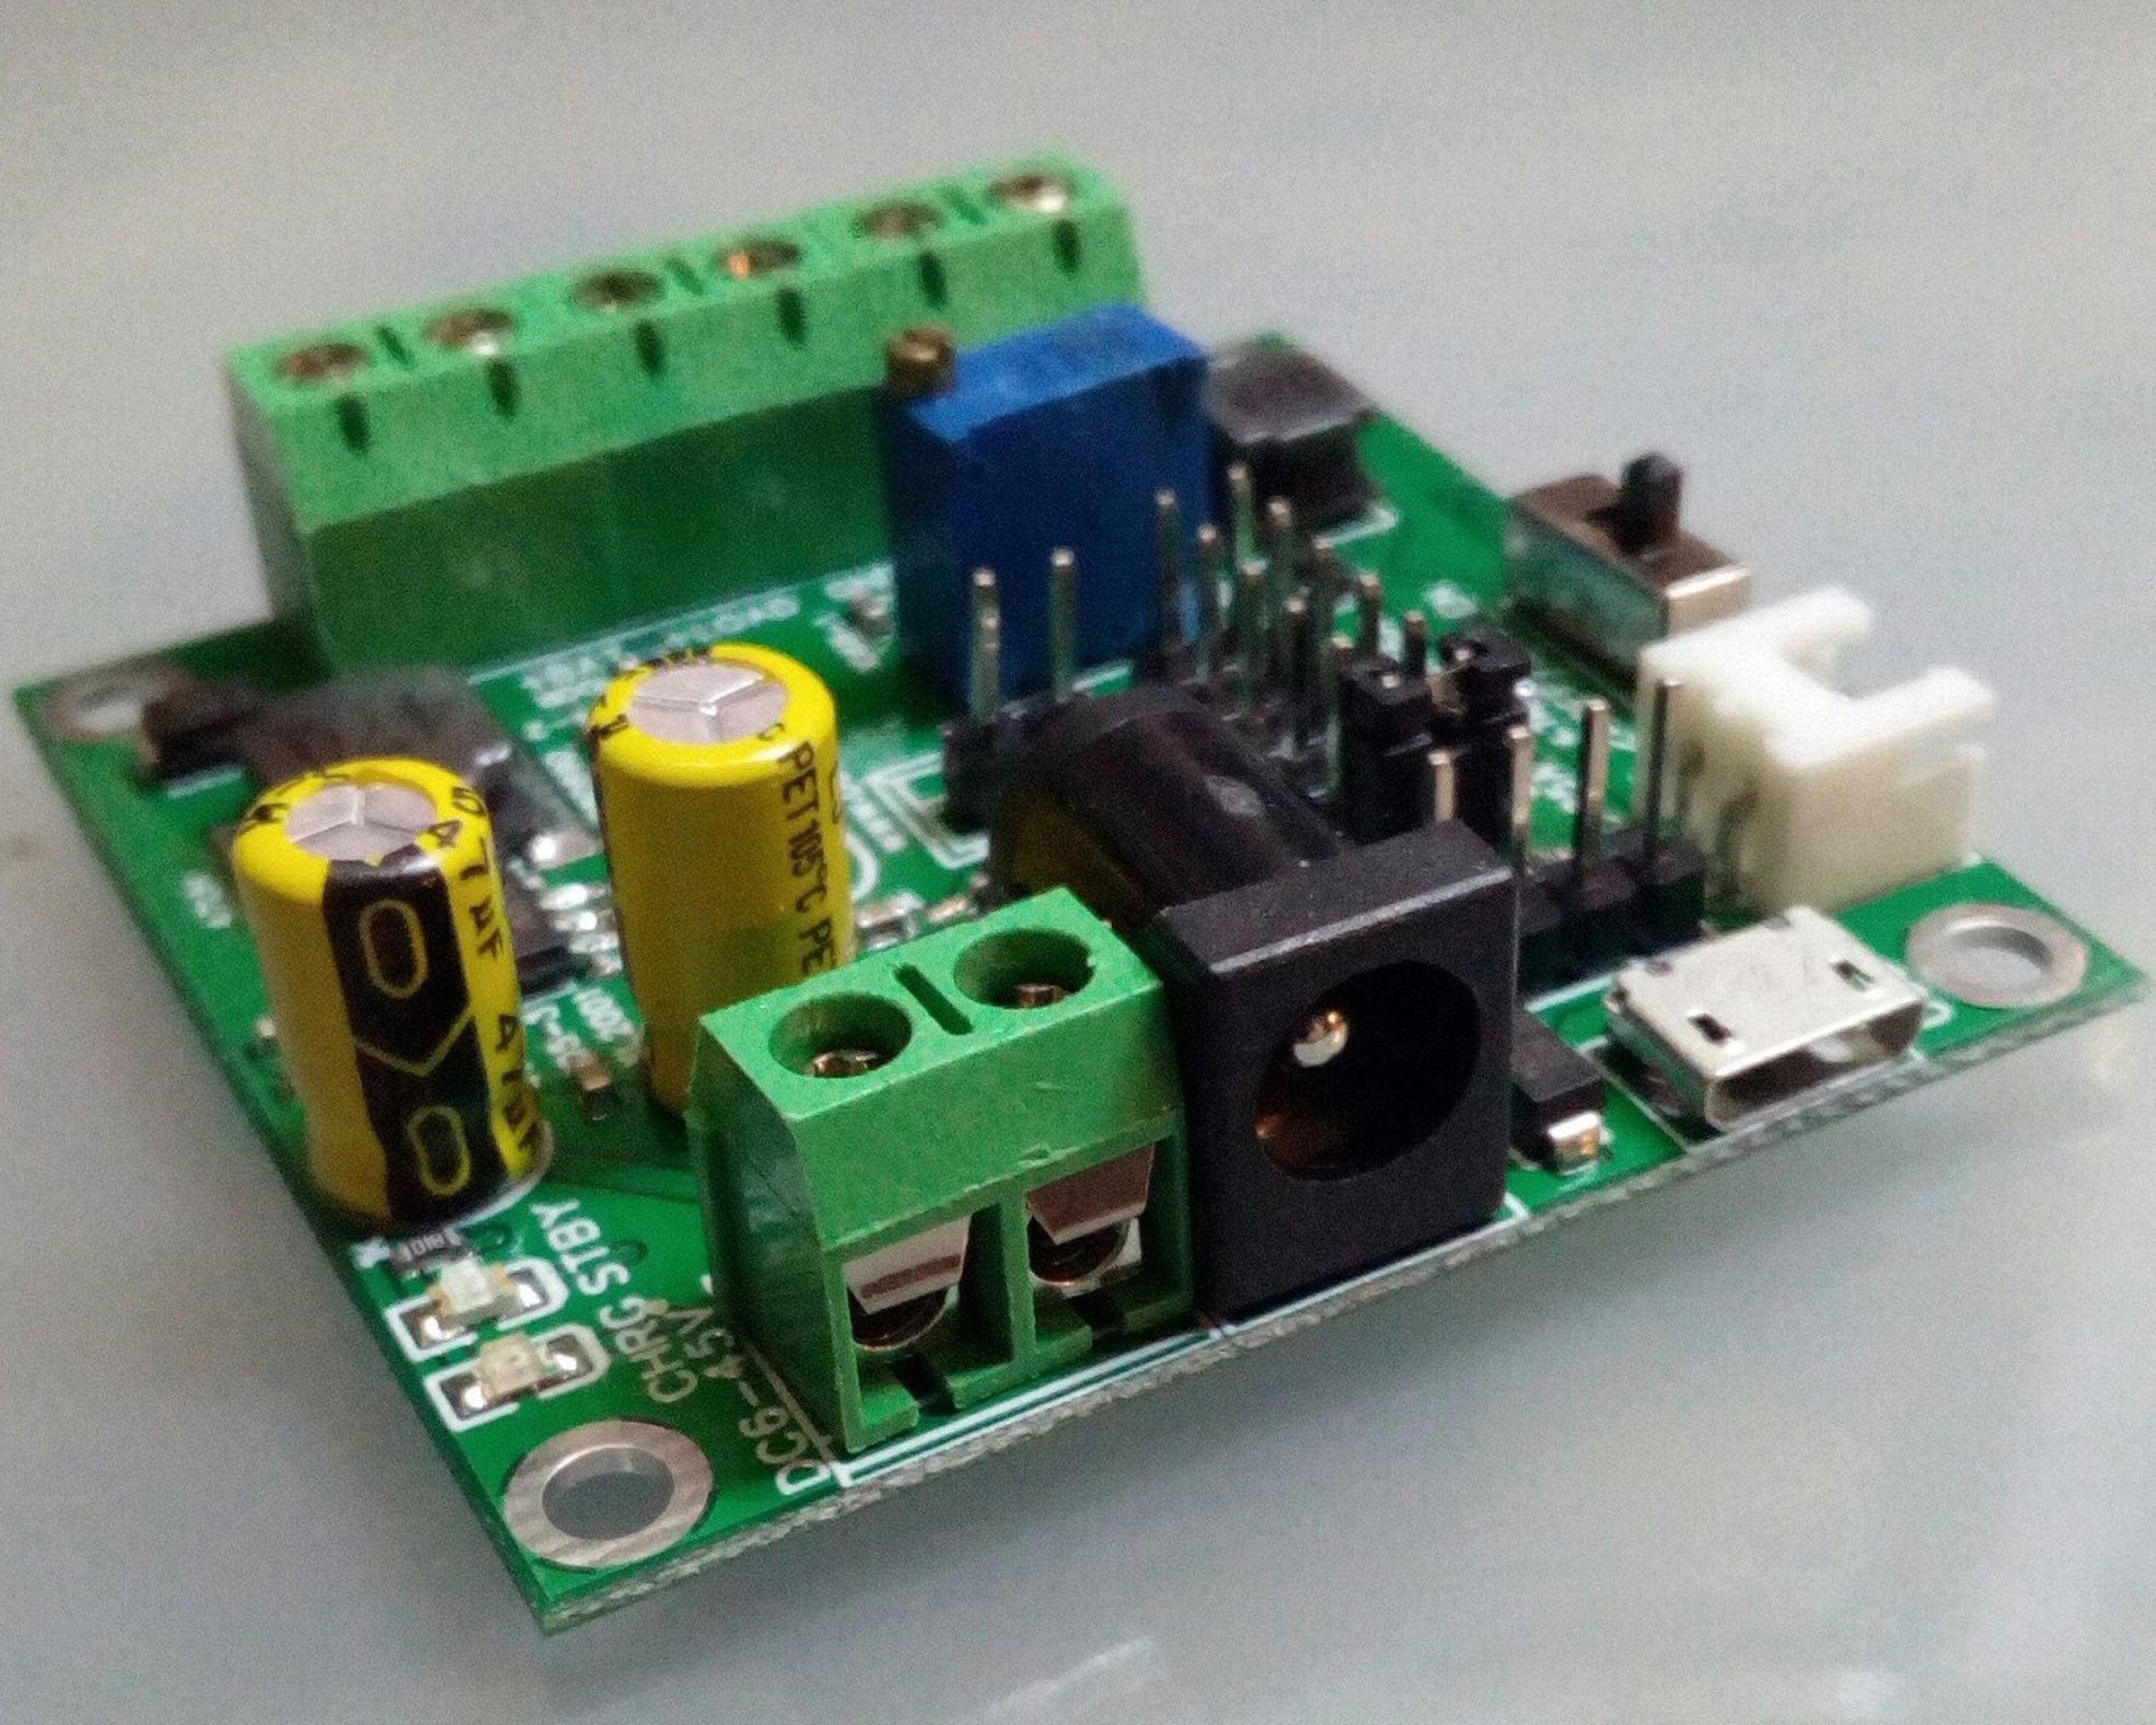 Cn3153fa 1s1a 3in1 Regulator Charger Booster Liion From Burgduino On Circuits Charging A 500 F Capacitor It Charges Up 1